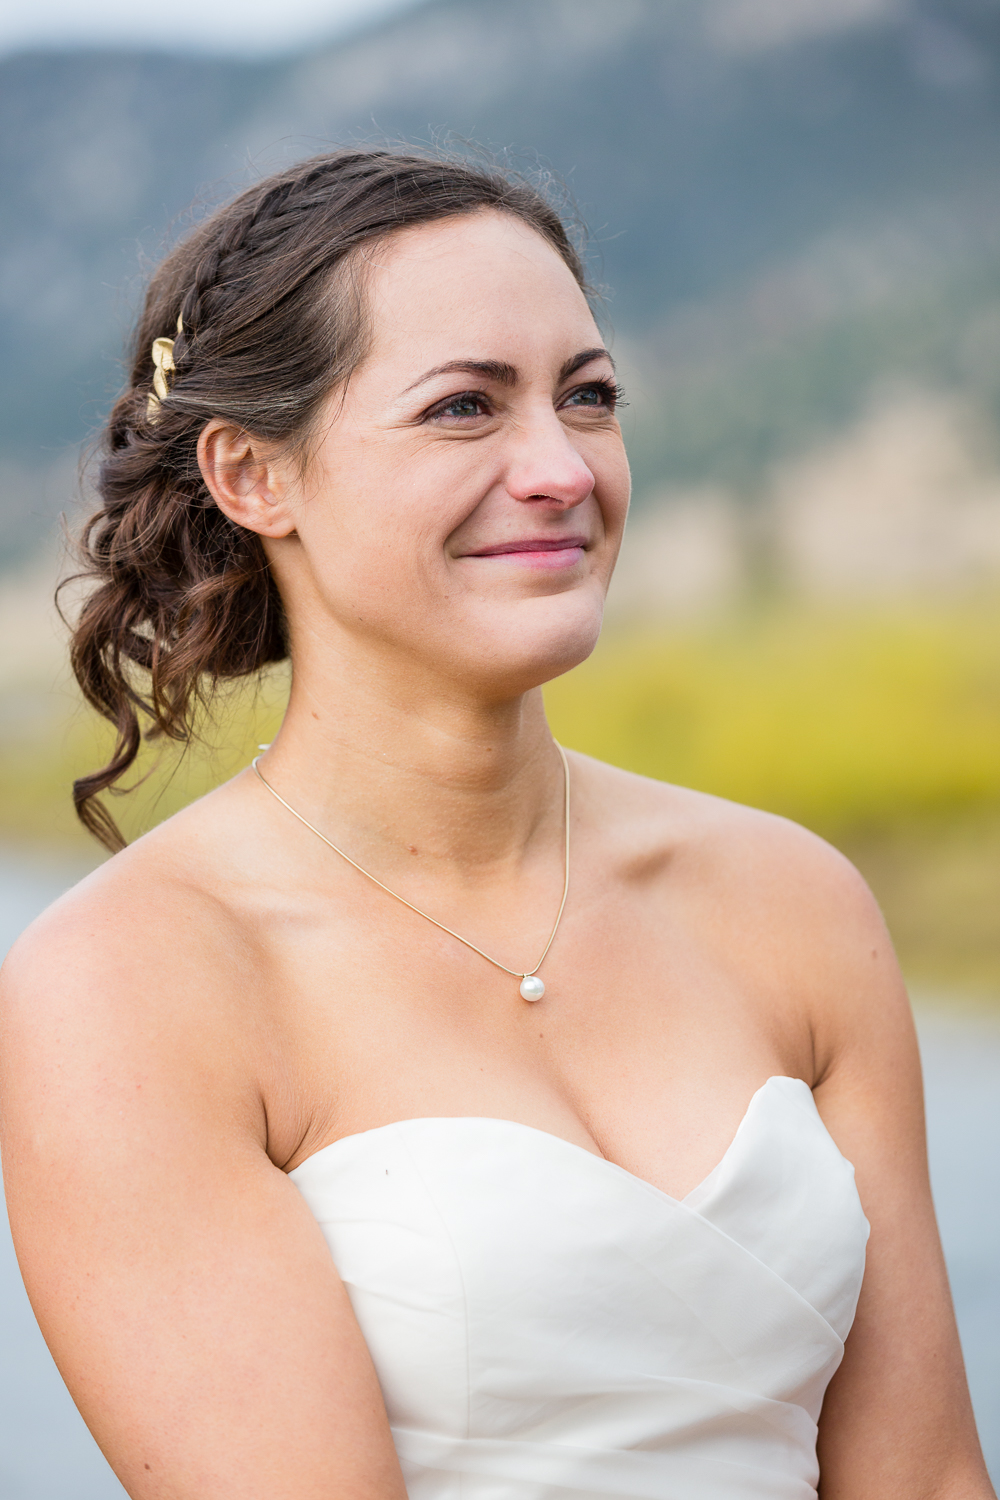 big-sky-montana-gallatin-riverhouse-wedding-bride-smiles-during-ceremony.jpg